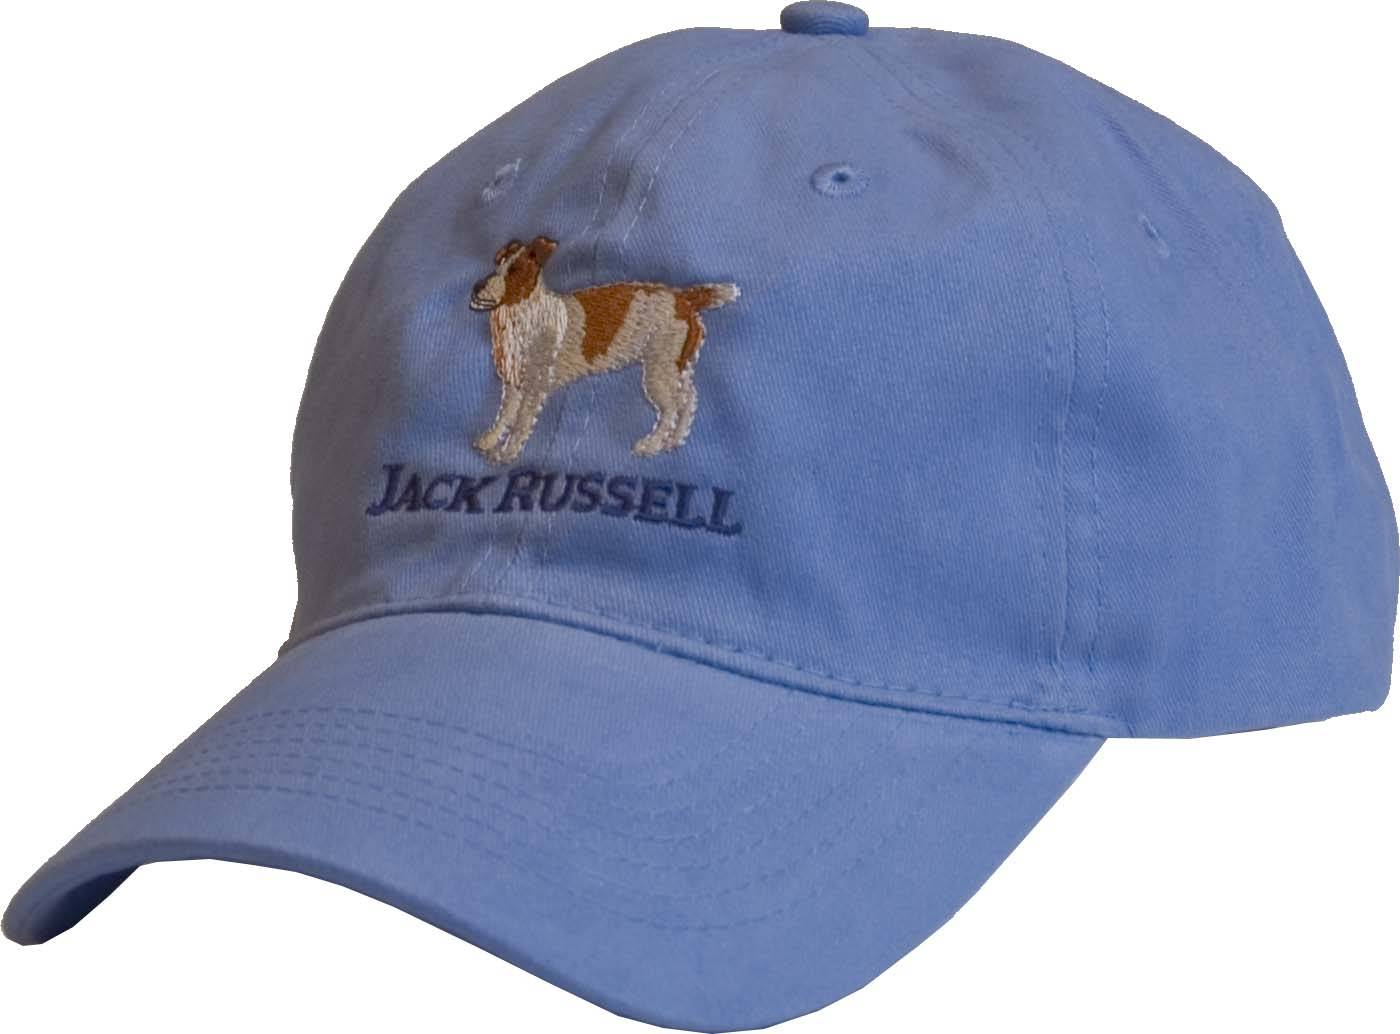 Stirrups Ladies Embroidered Jack Russell Cotton Twill Cap